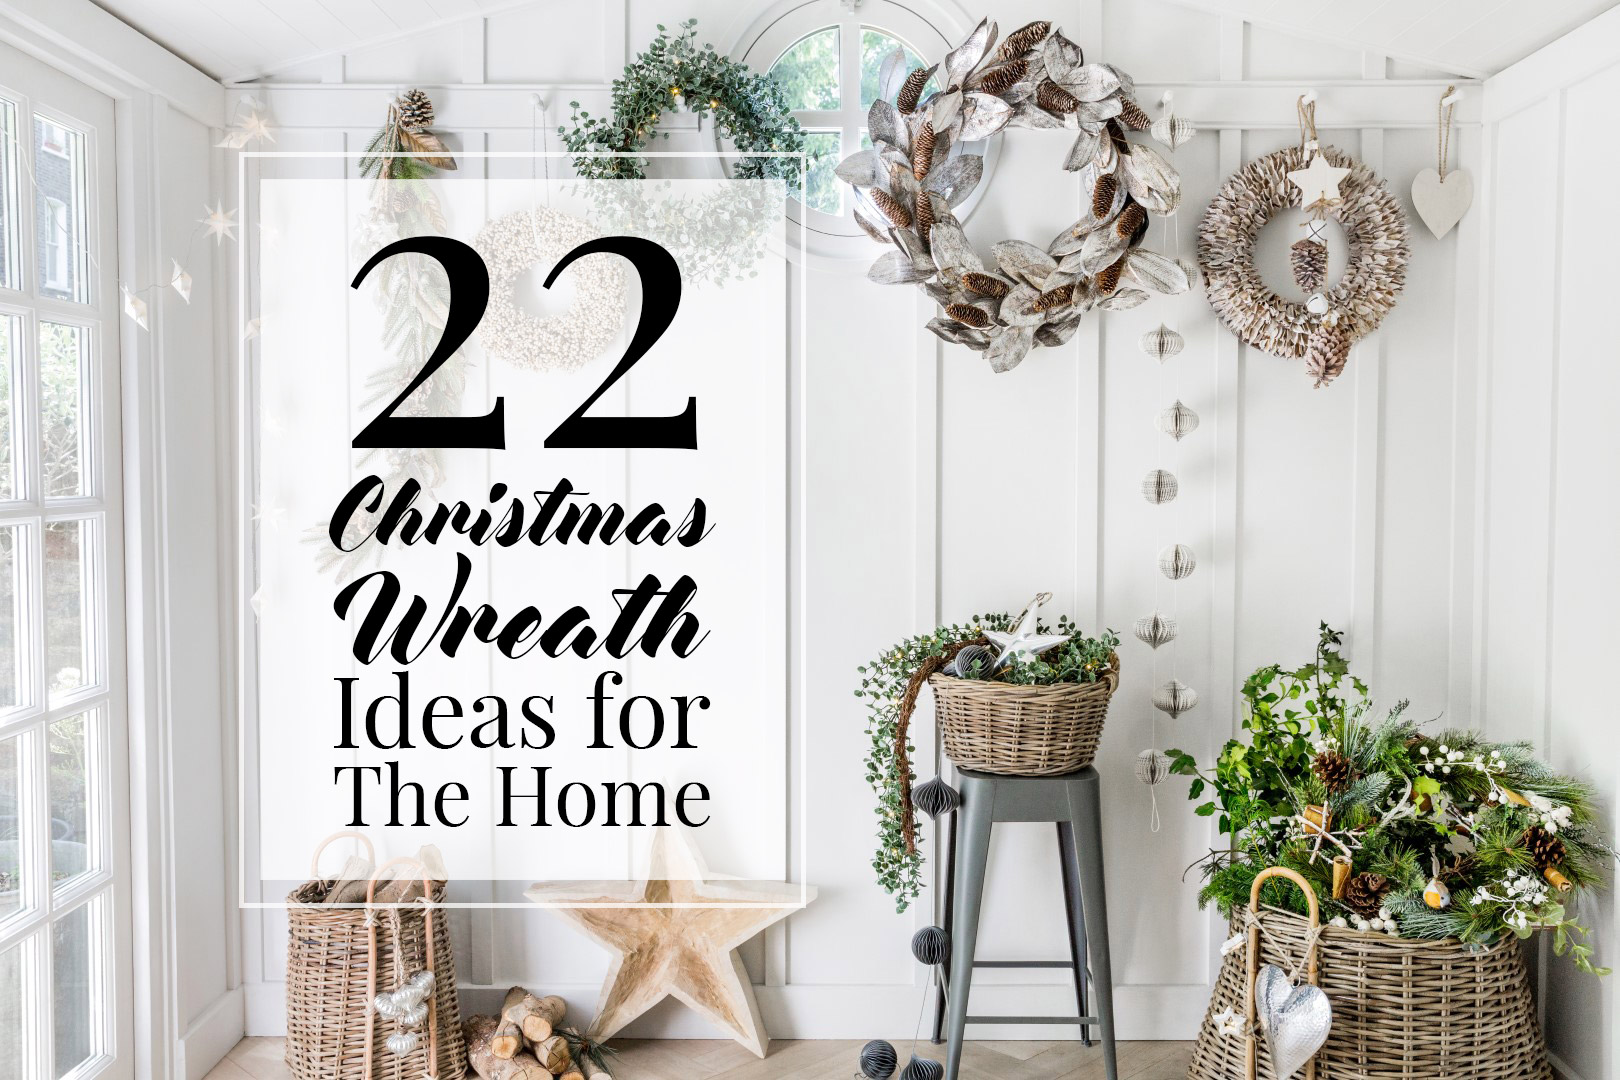 Christmas Wreath Ideas.22 Christmas Wreath Ideas For Your Home The Luxpad The